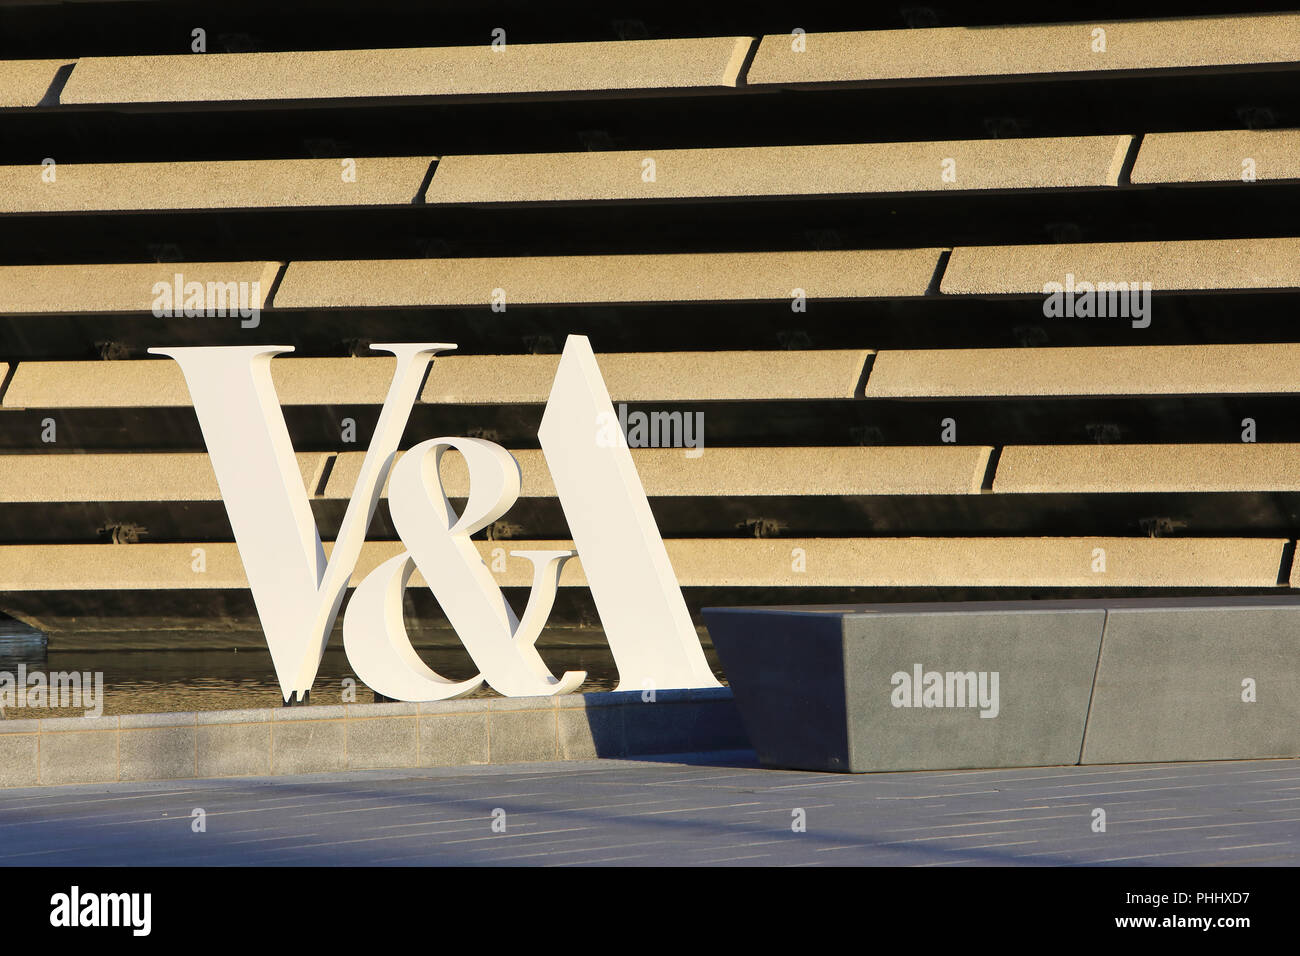 Kengo Kuma's new V&A Dundee, on the Riverside Esplanade as part of the city's waterfront regeneration, in Scotland, UK Stock Photo